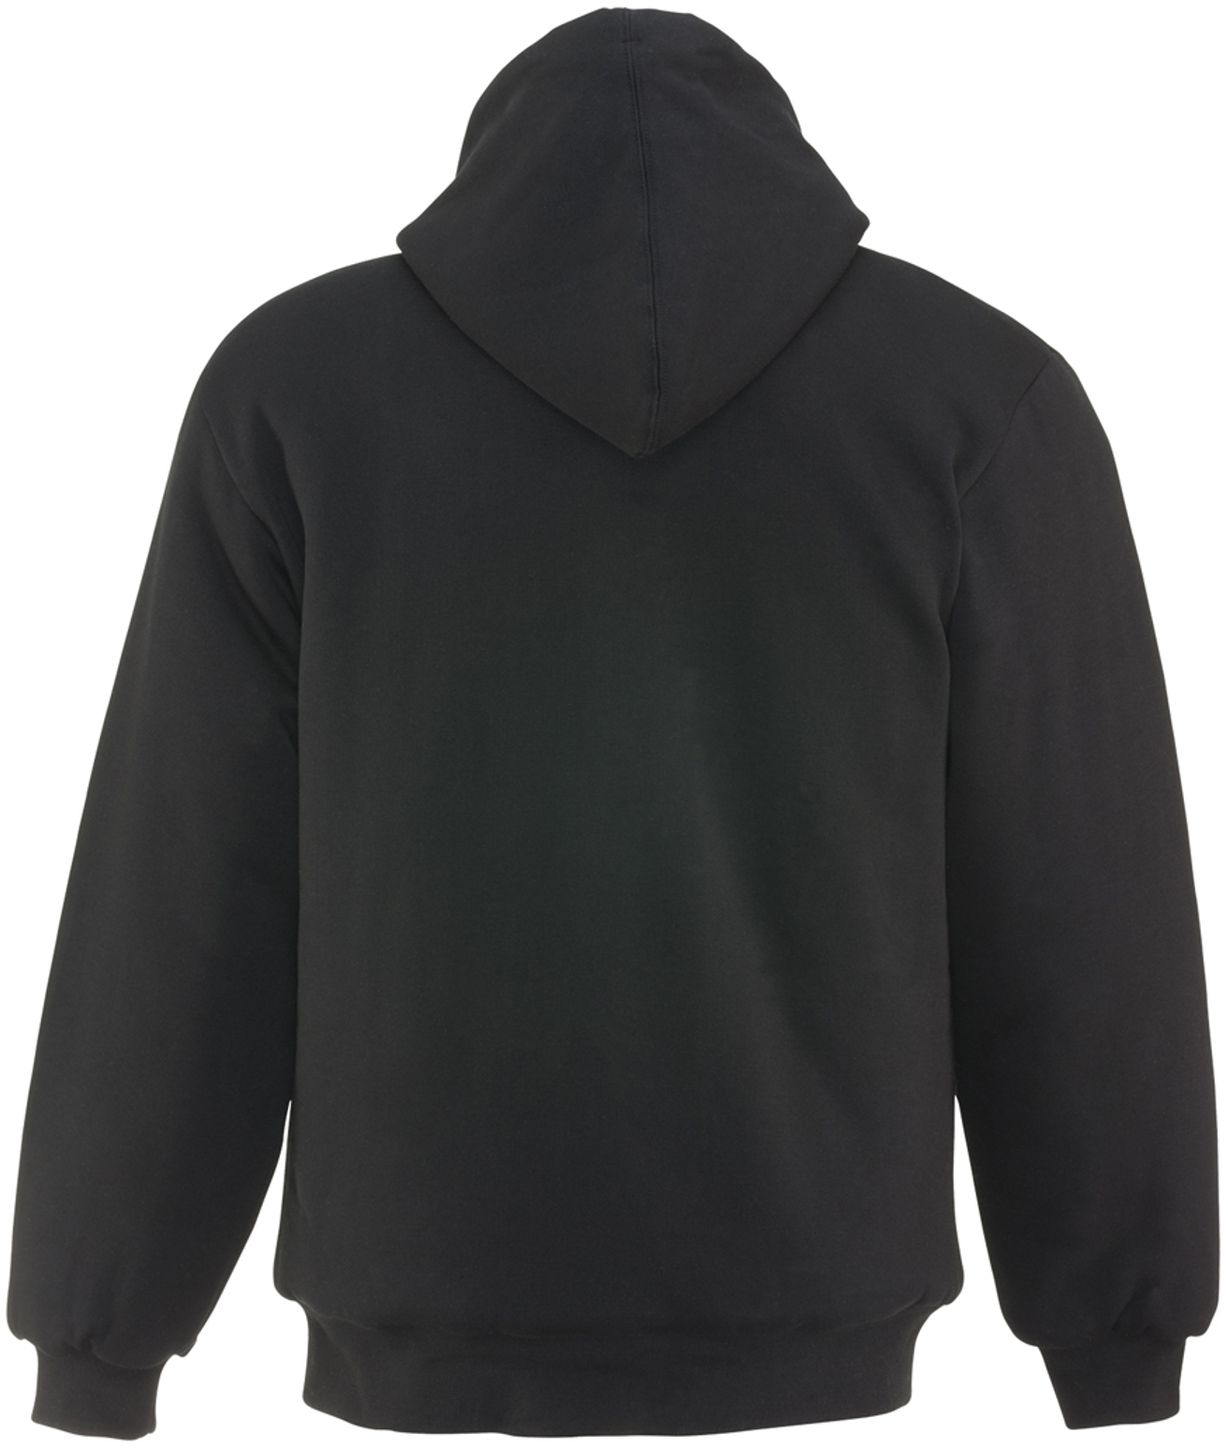 RefrigiWear 0488 Quilted Insulated Zipper Work Sweatshirt With Hood 3 Layer Black Back